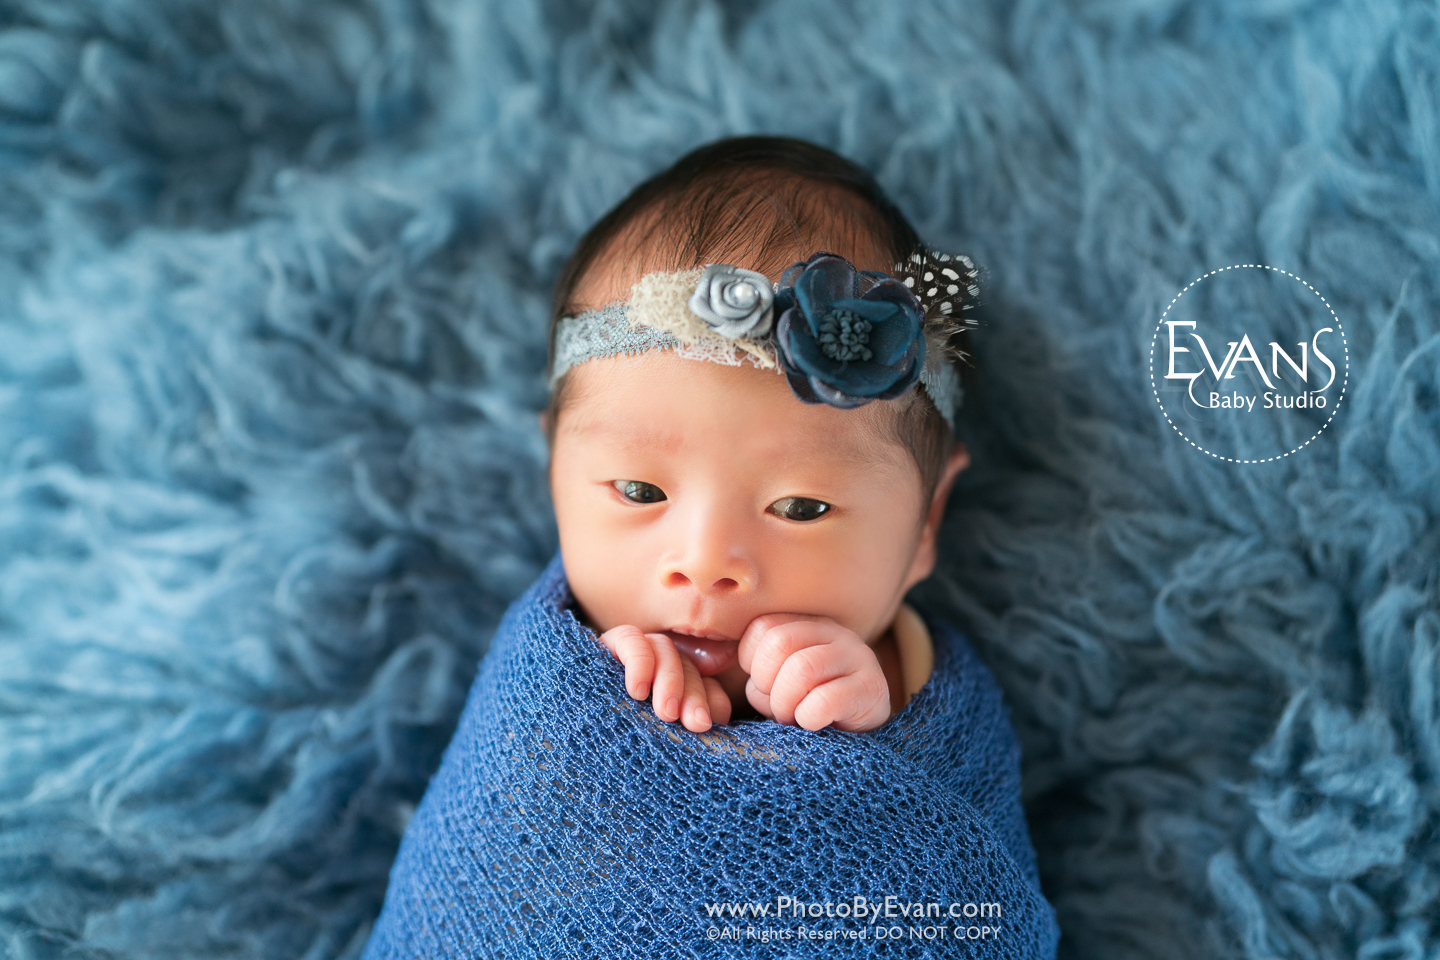 infant photography, newborn photography, newborn hong kong, newborn photography hong kong, baby studio, baby photography, newborn studio, newborn baby photography, baby studio, newborn studio, newborn photo, natural light, 香港嬰兒攝影, 香港初生嬰兒, 初生嬰兒, 初生嬰兒攝影,嬰兒影樓,嬰兒攝影, 初生嬰兒攝影, newborn 攝影, newborn, 上門攝影, 上門newborn攝影, 上門初生嬰兒攝影